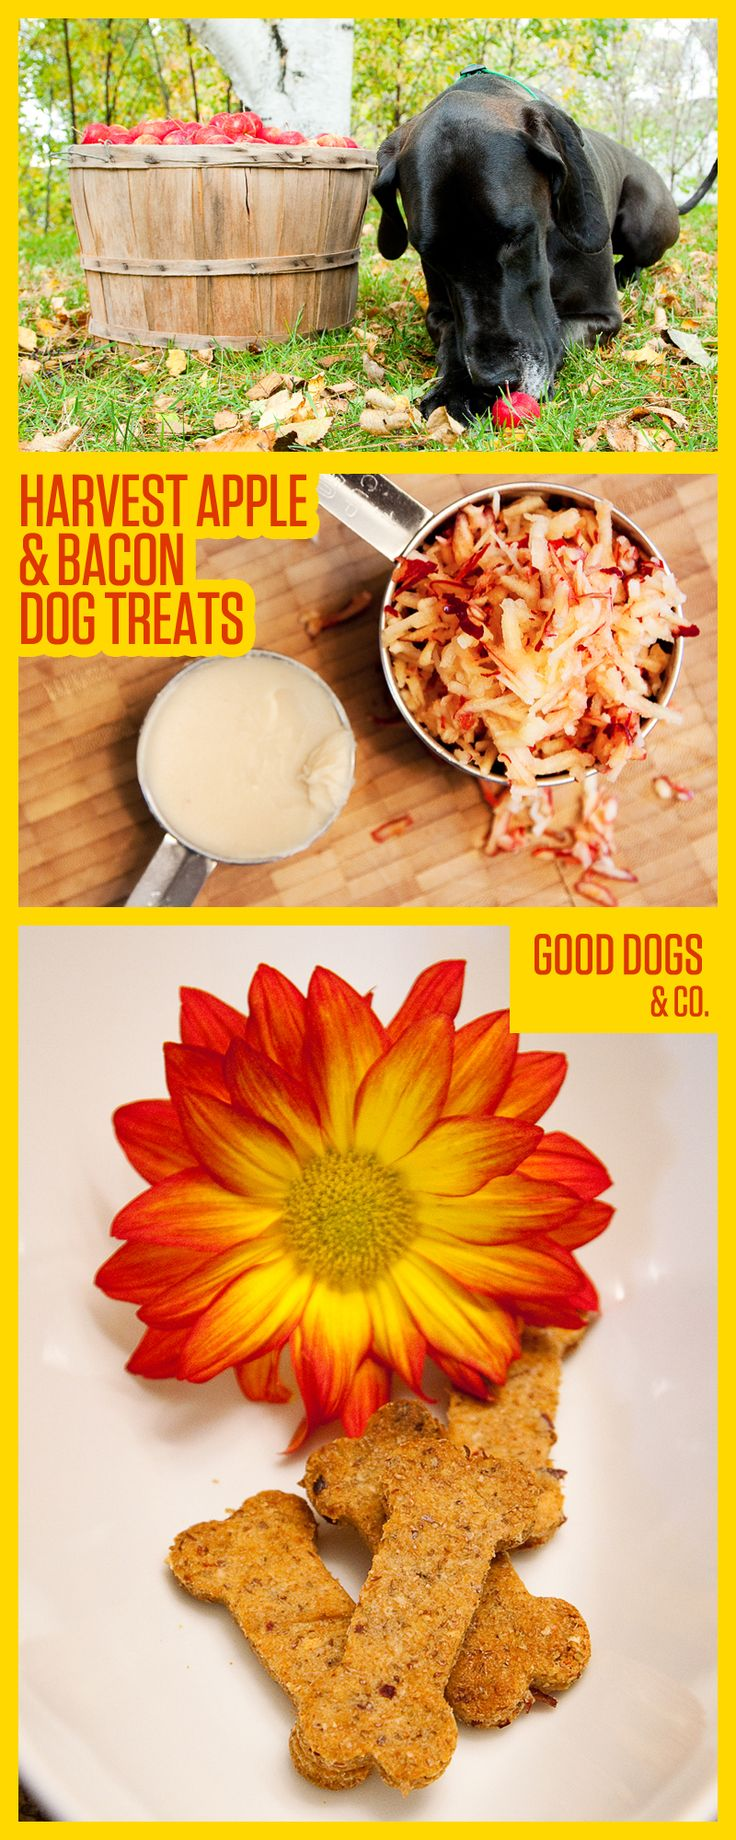 Harvest Apple & Bacon Dog Treats make a great holiday treat for your pup! Happy Thanksgiving!